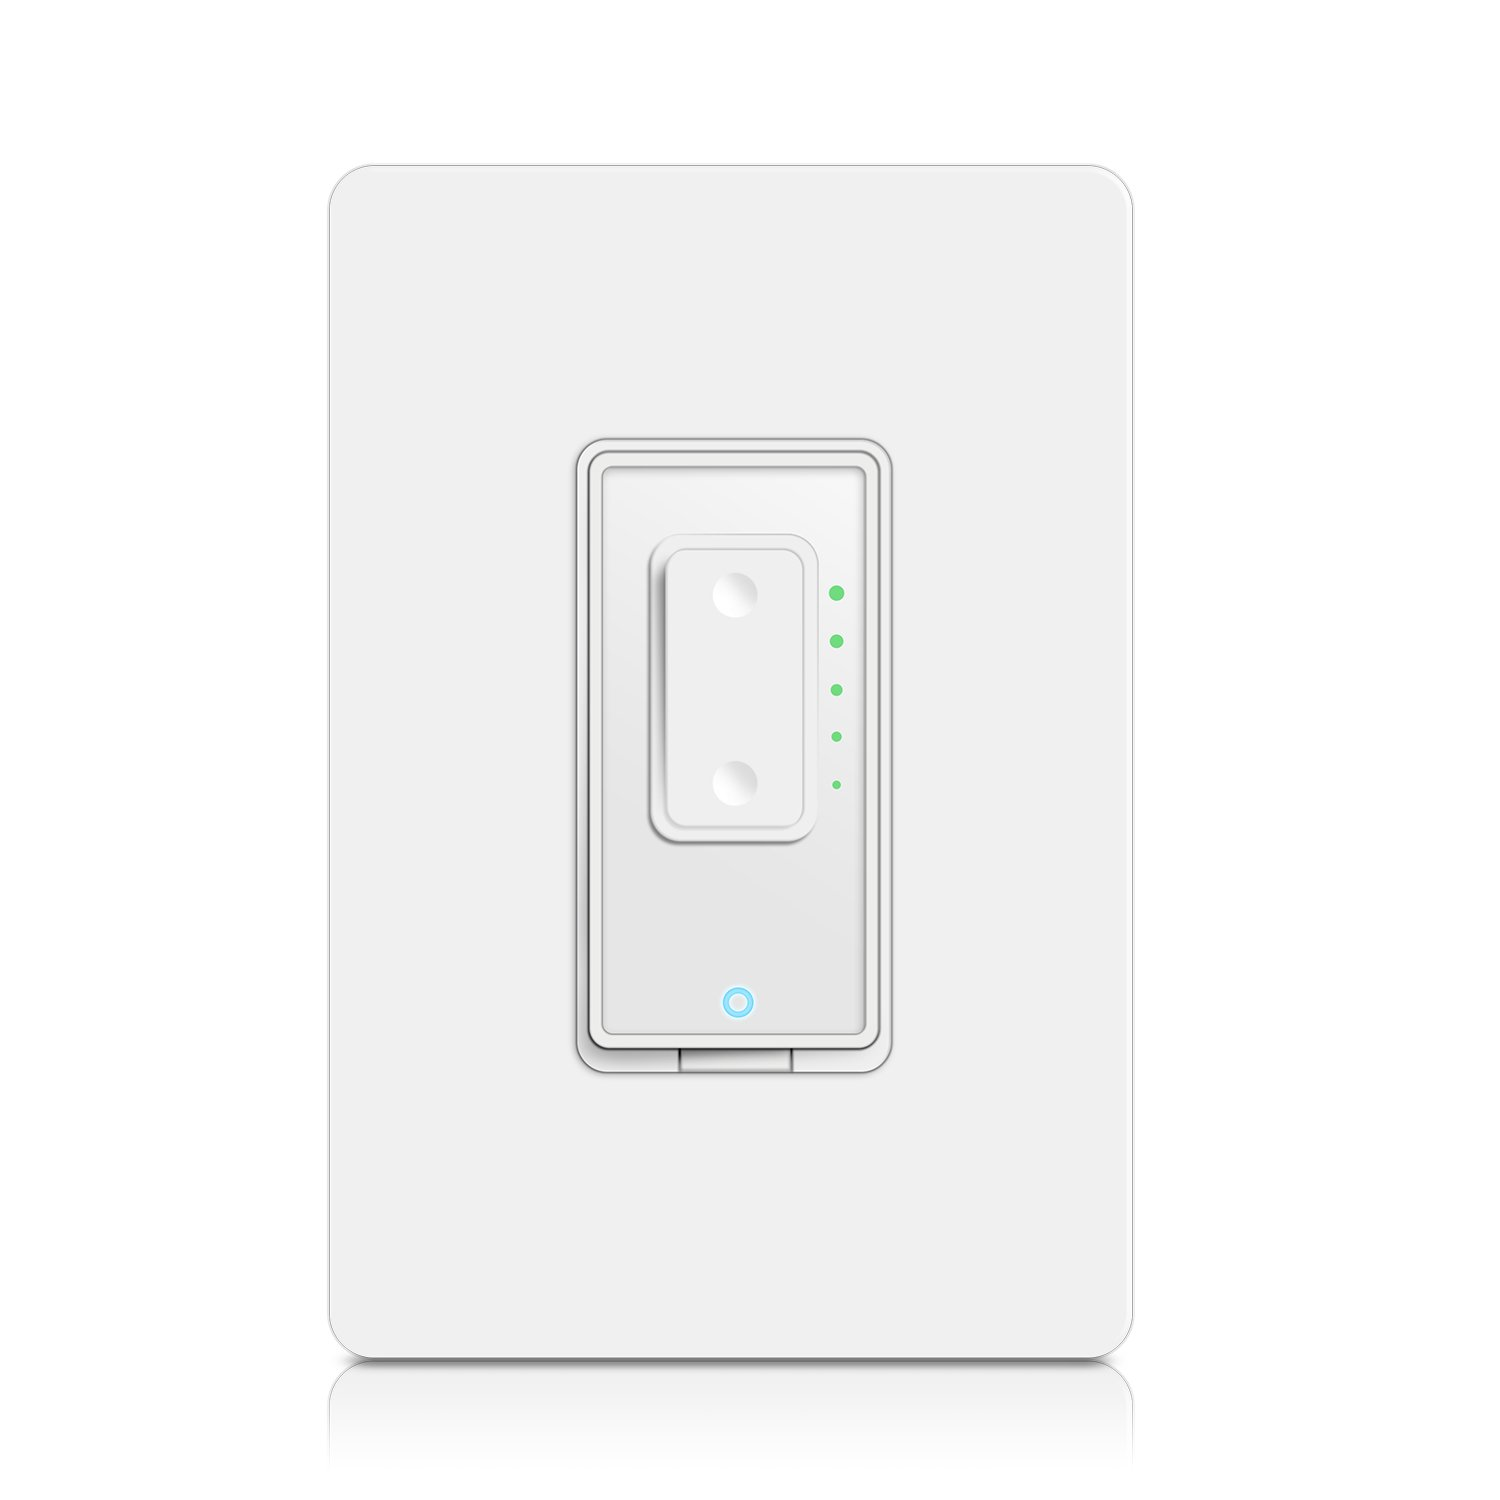 Smart Dimmer Switch by Martin Jerry | SmartLife App, Mains Dimming ONLY, Compatible with Alexa as WiFi Light Switch Dimmer, Single Pole, Works with Google Assistant [For Sale NOW]